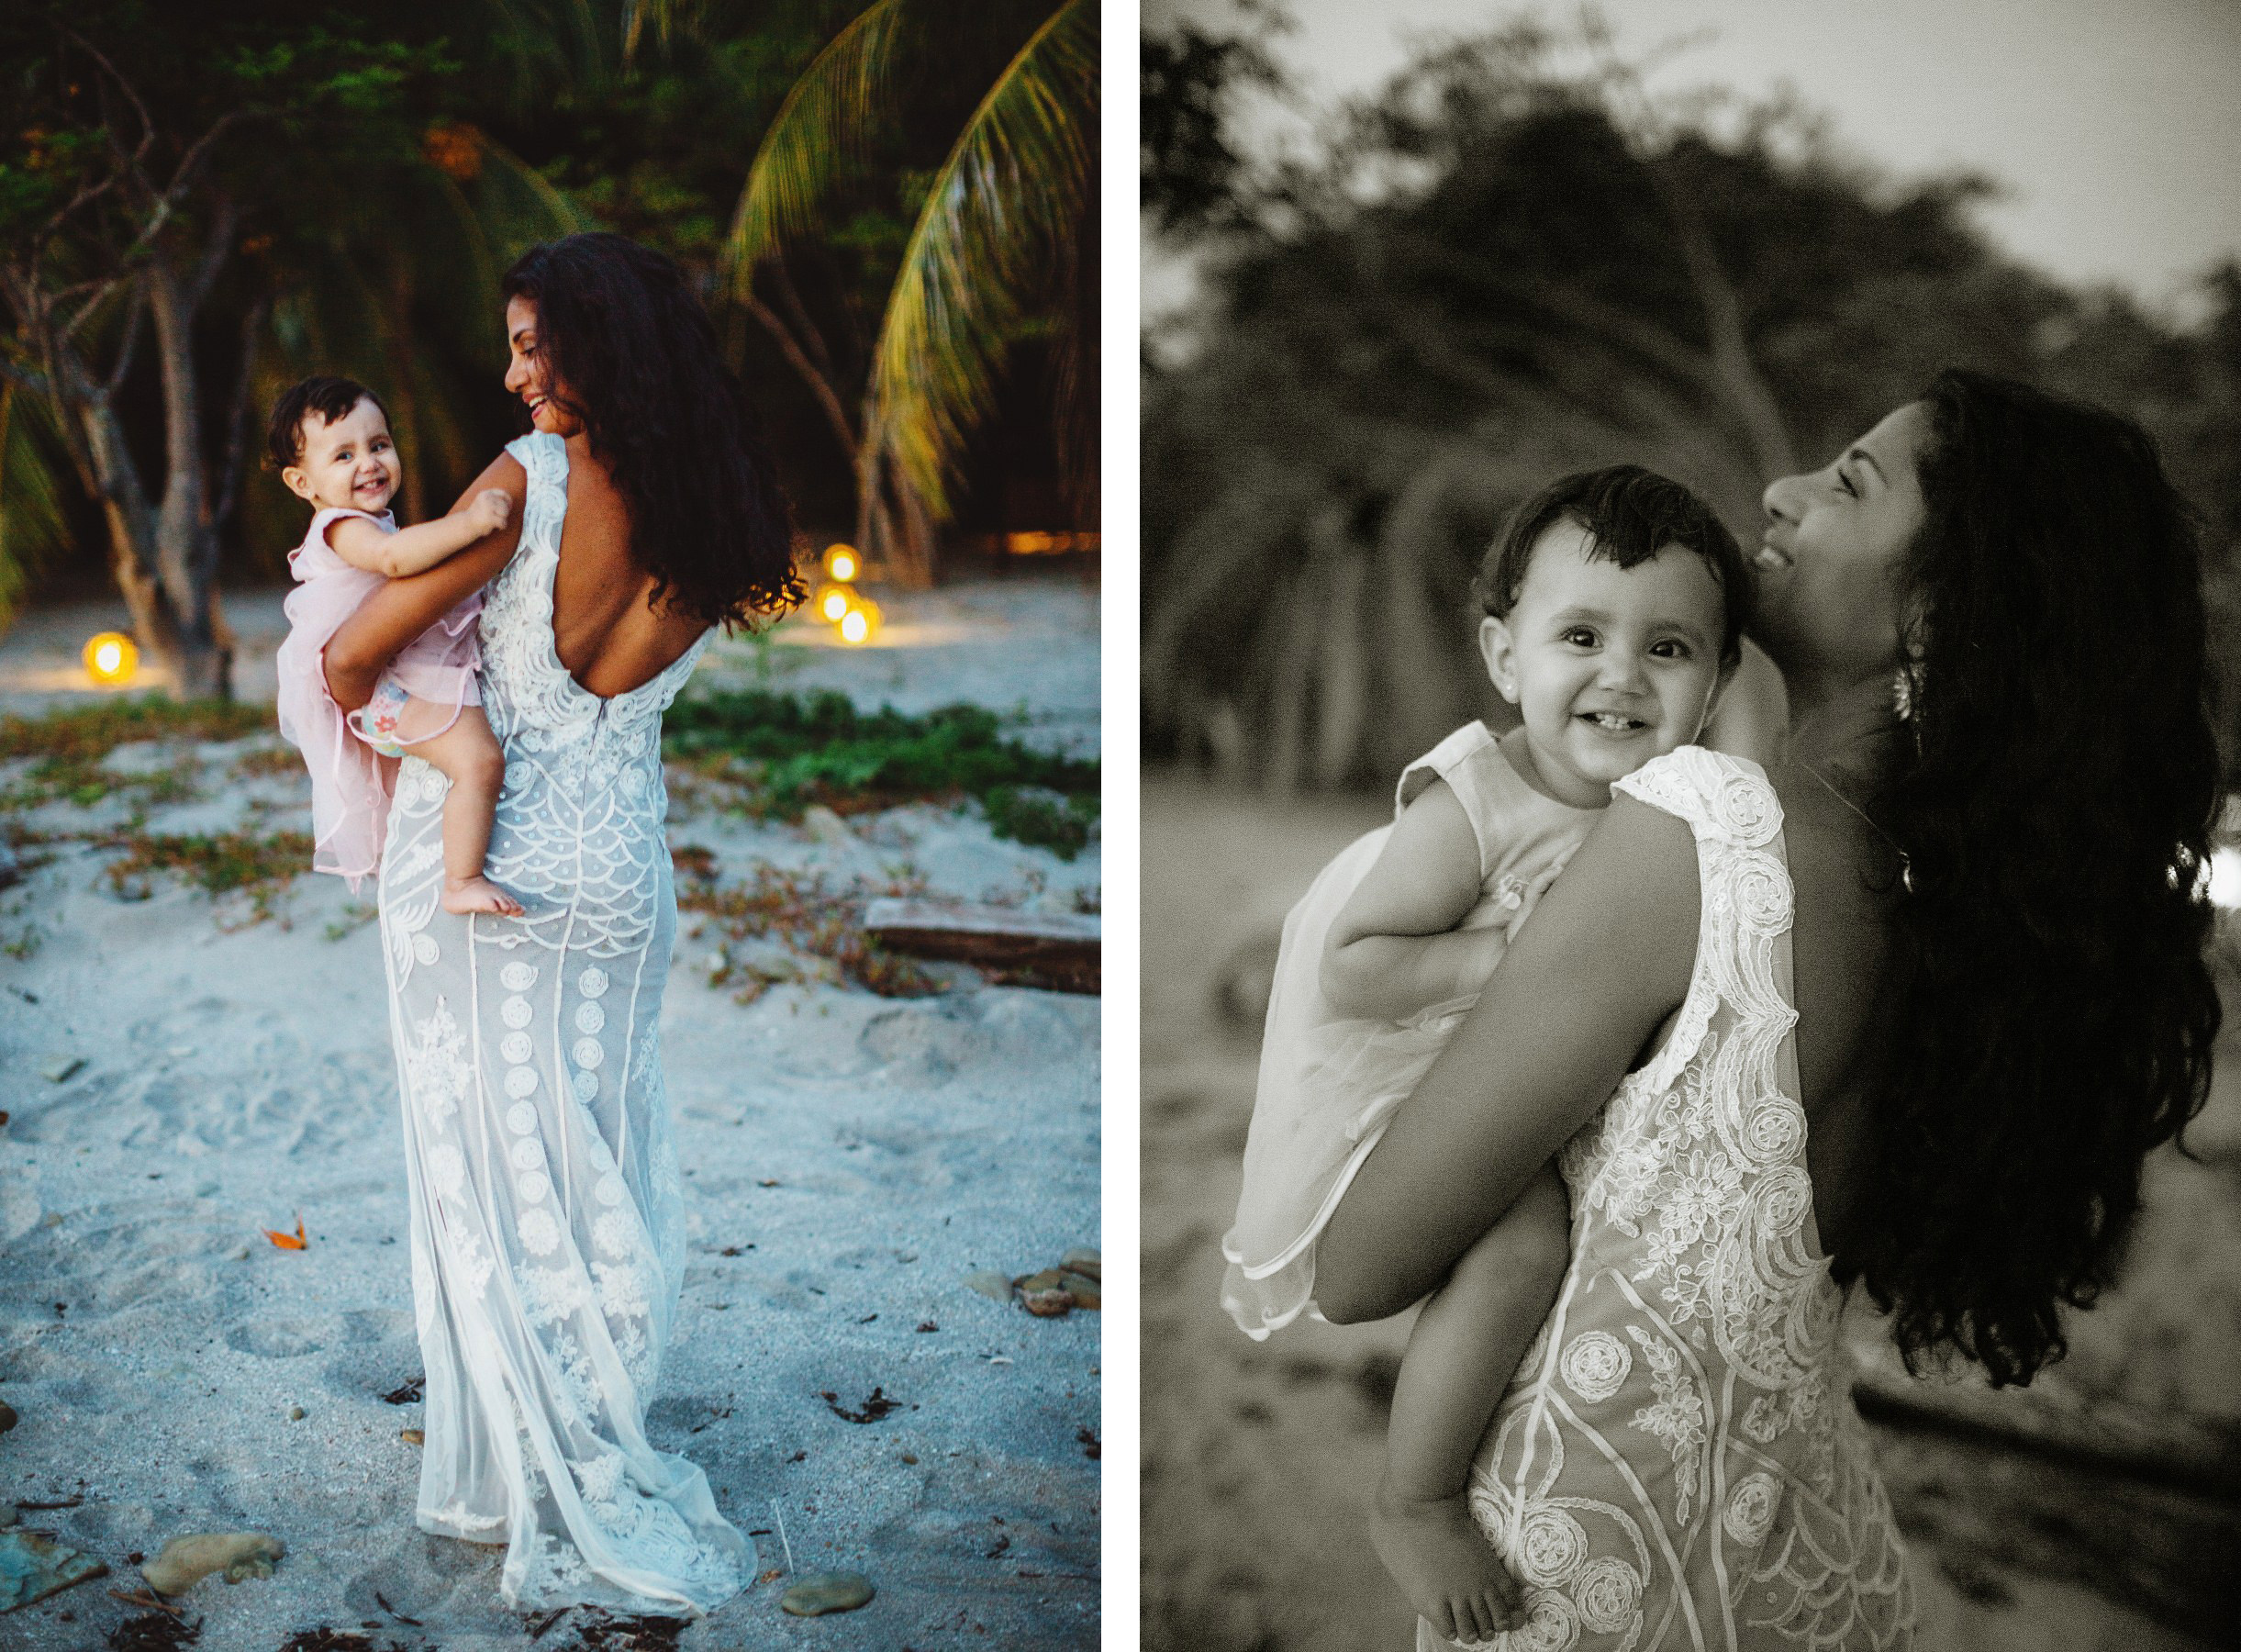 The Bride with her daughter - portrait at the beach